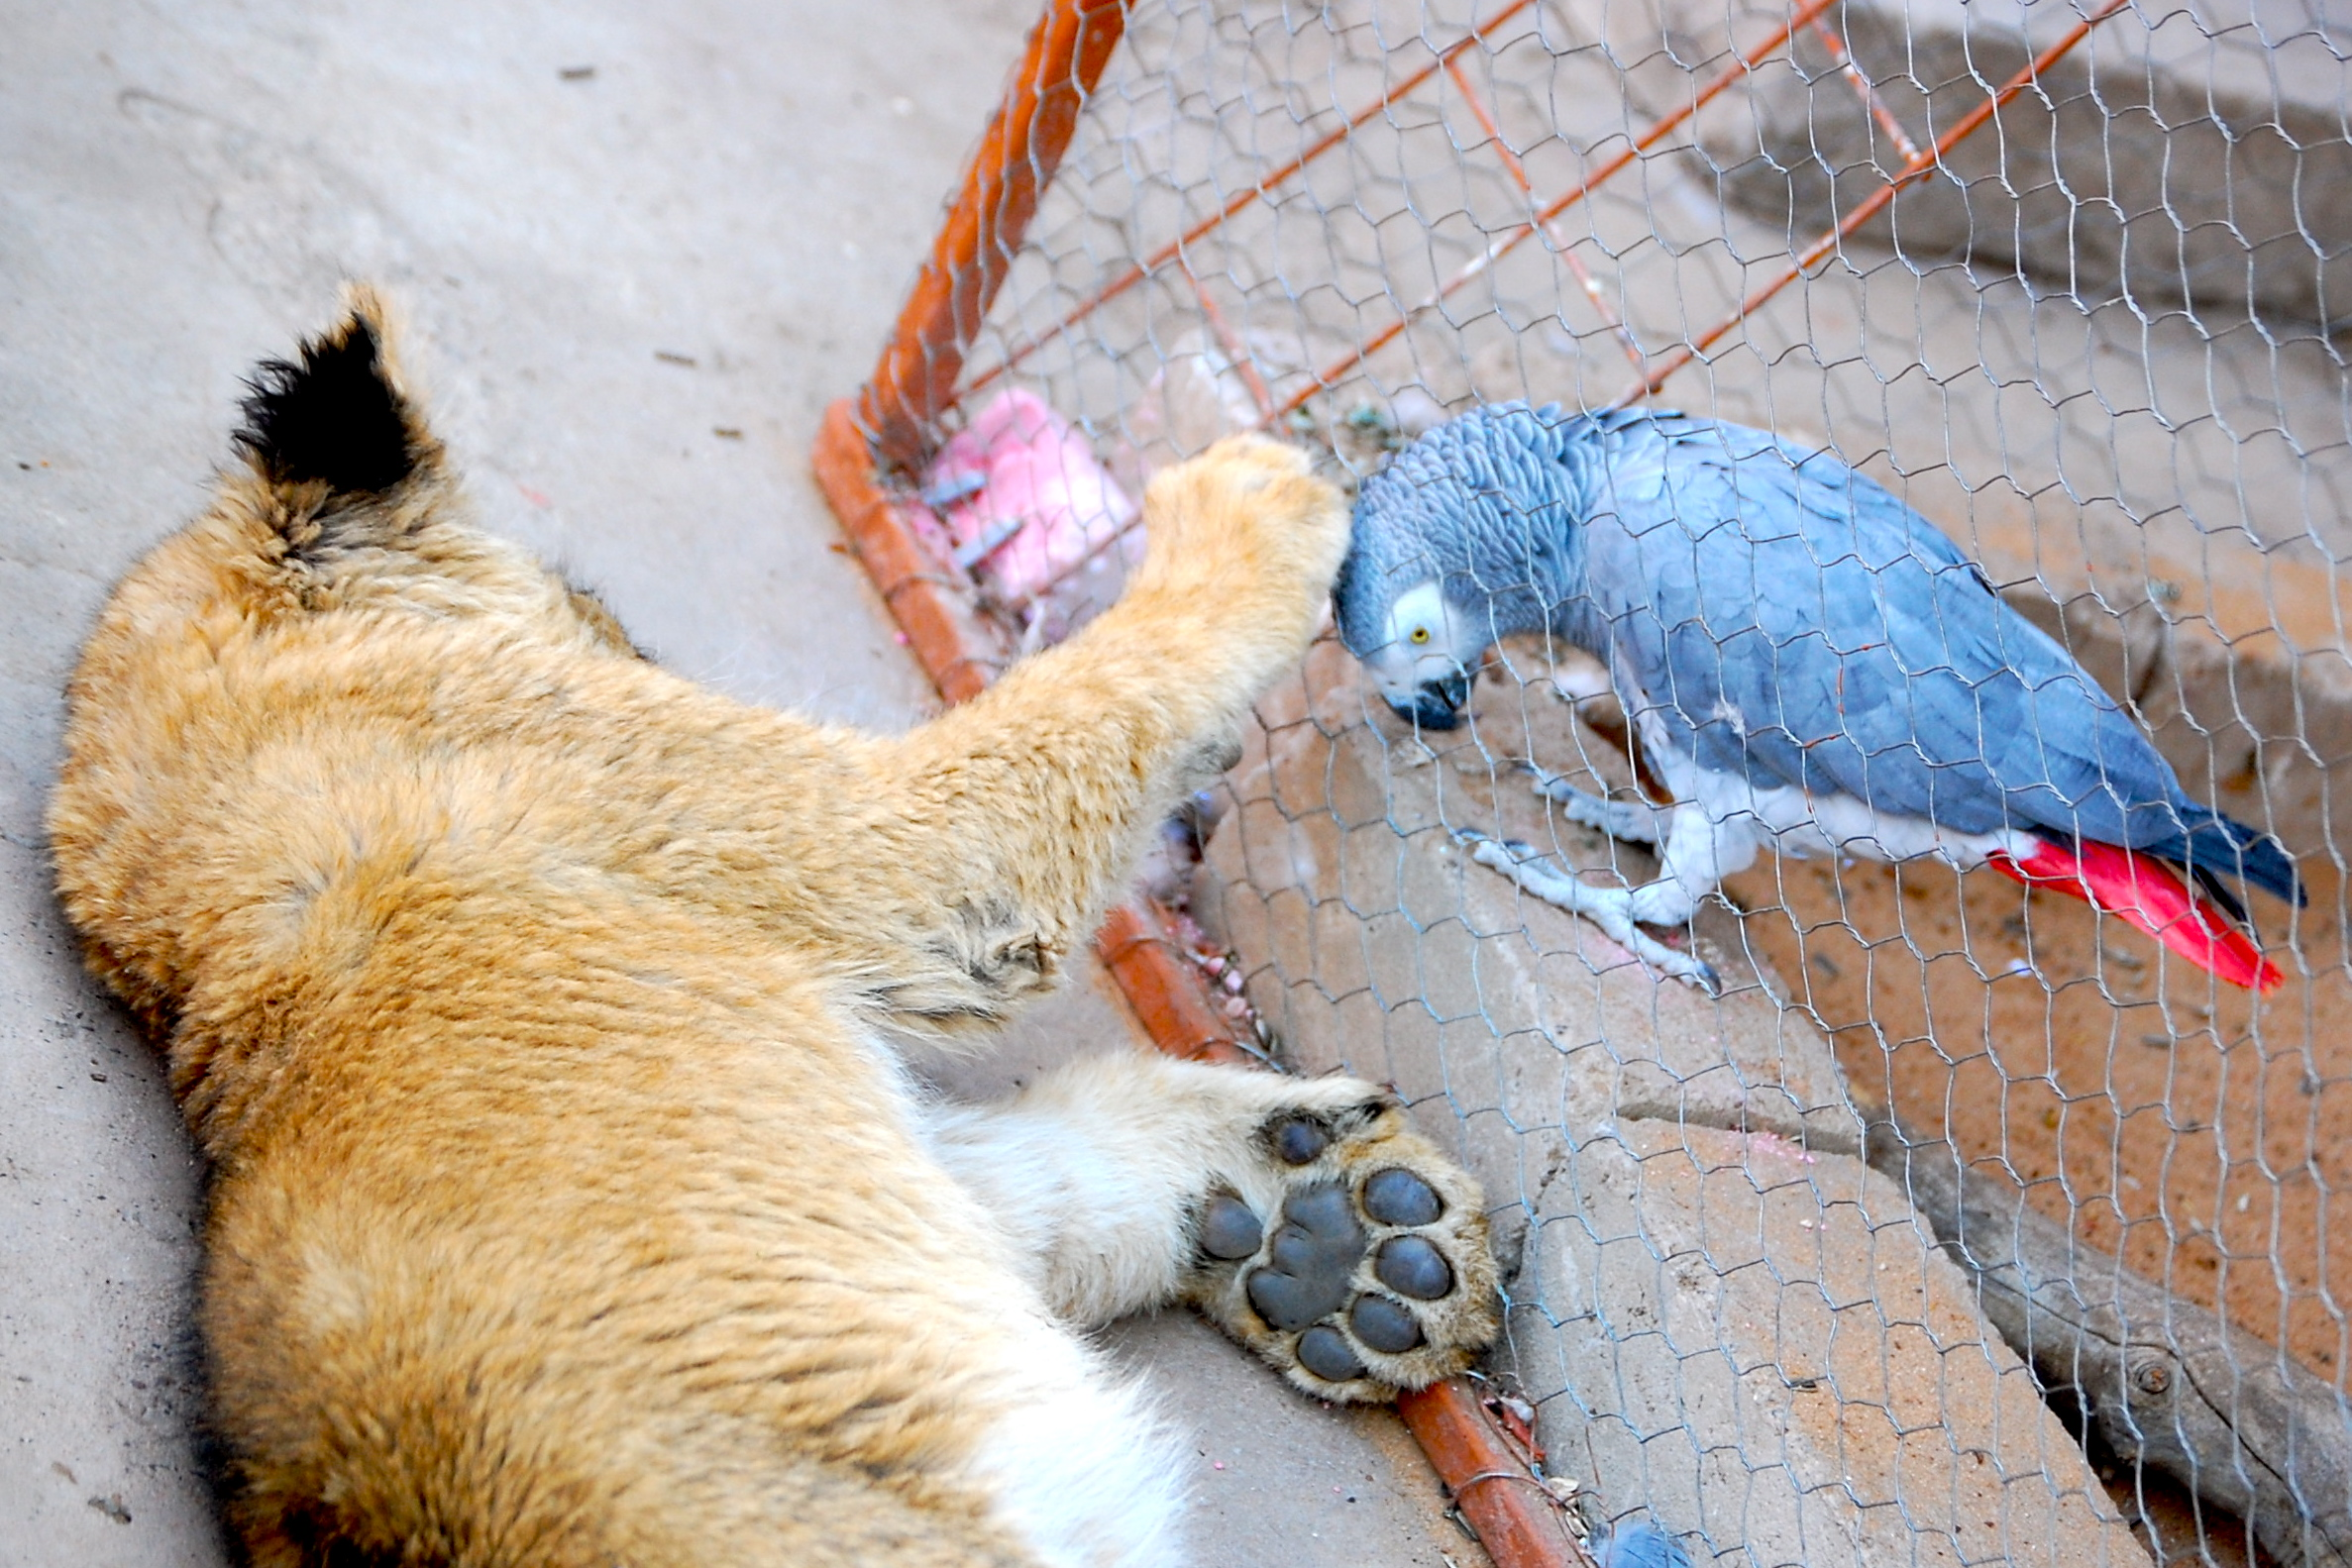 A young lion cub and an African grey parrot greet each other near Gobabis, Namibia